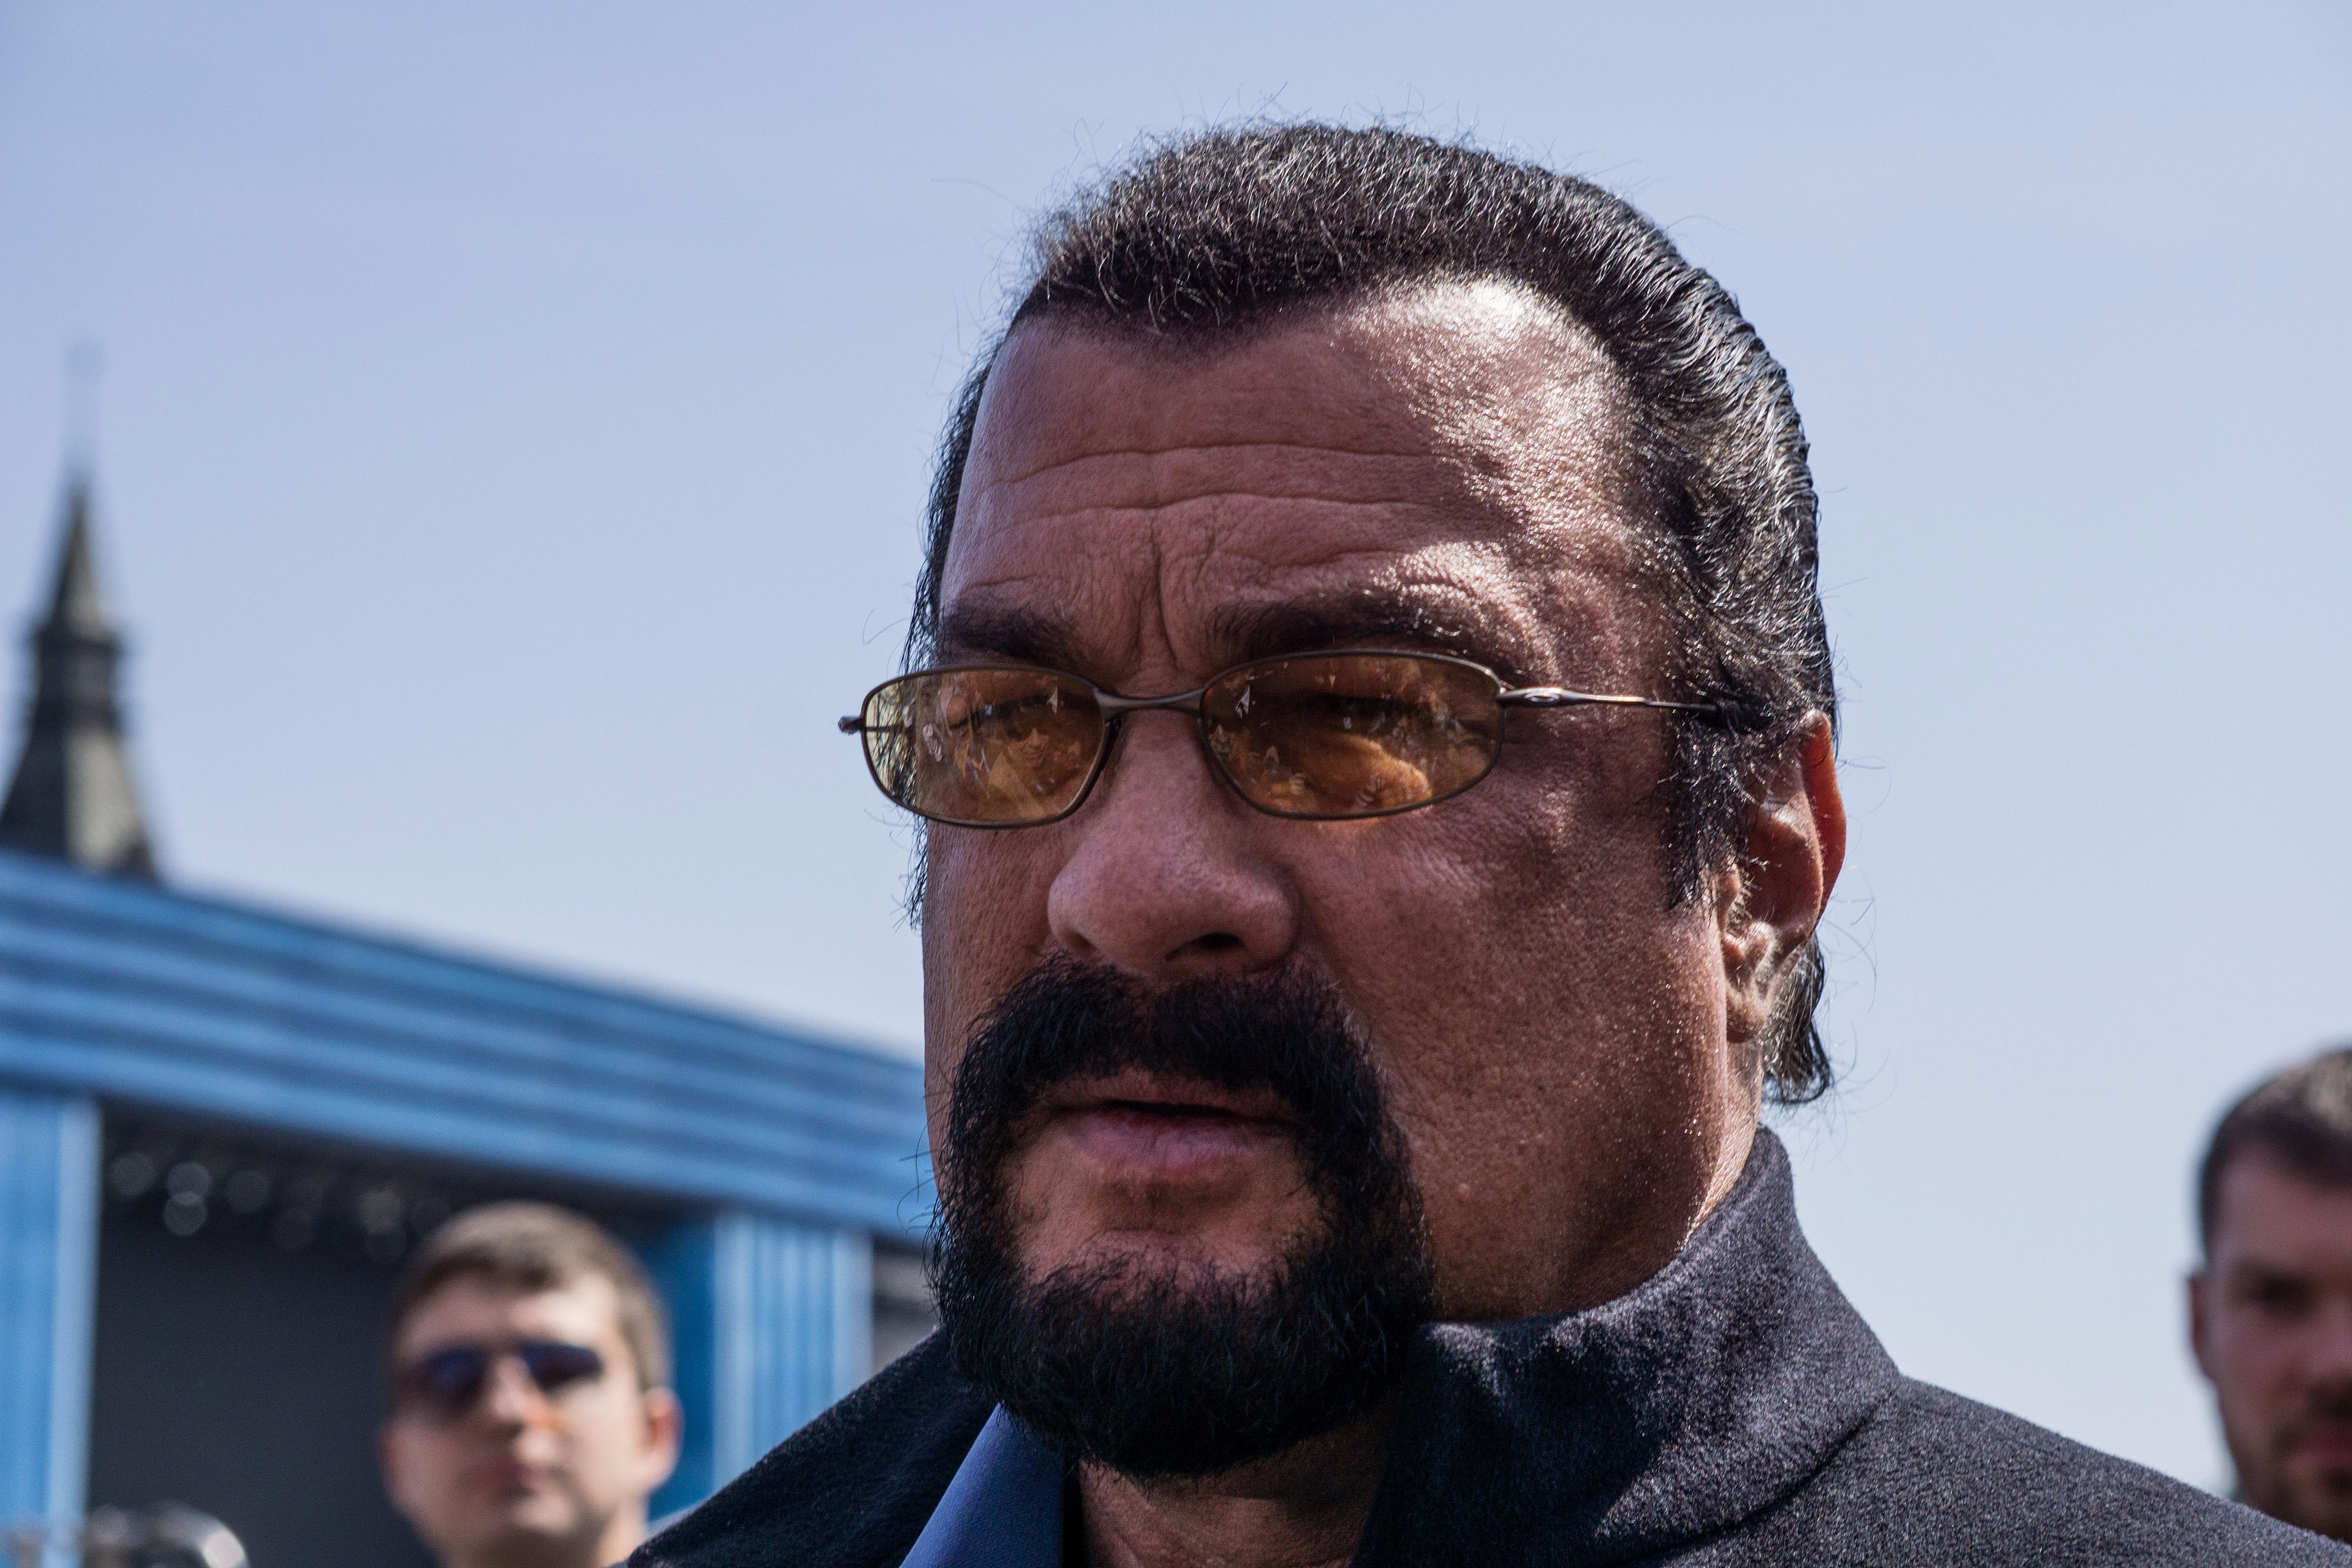 Steven Seagal Doesn't Talk About Politics With Pal Putin